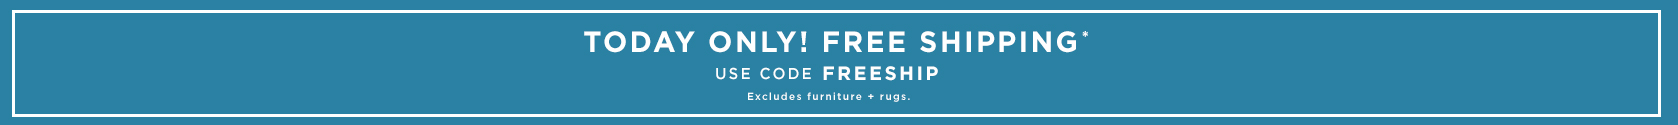 Today Only! Free Shipping. Use Code FREESHIP